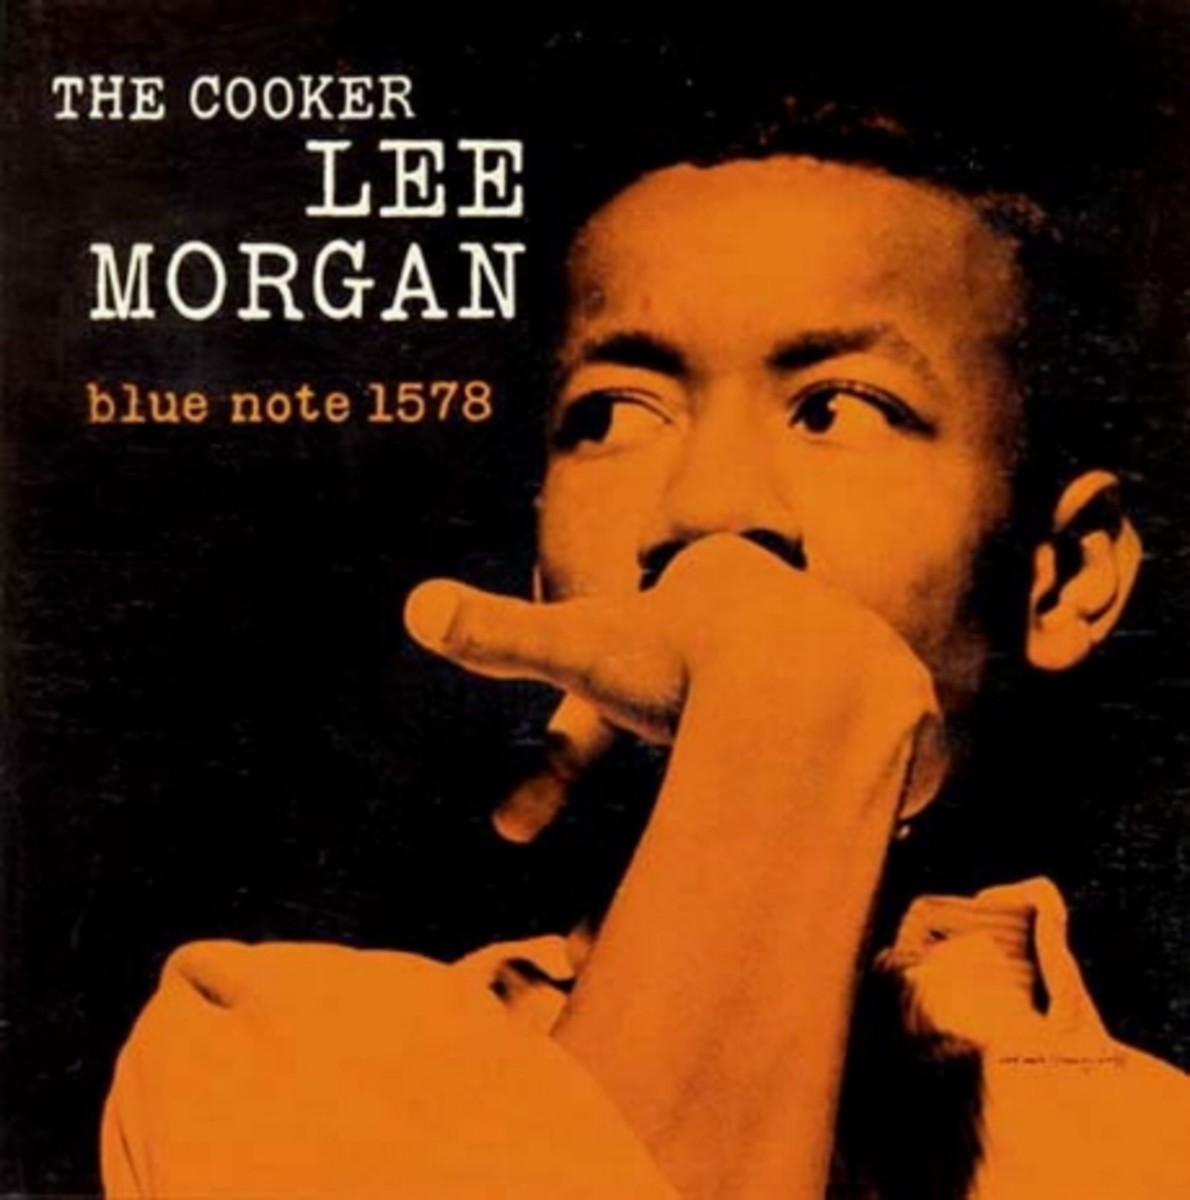 """Lee Morgan """"The Cooker"""" Blue Note Records BLP 1578 12"""" LP Vinyl Record (1958) Album Cover Design by Reid Miles Photo by Francis Wolff"""